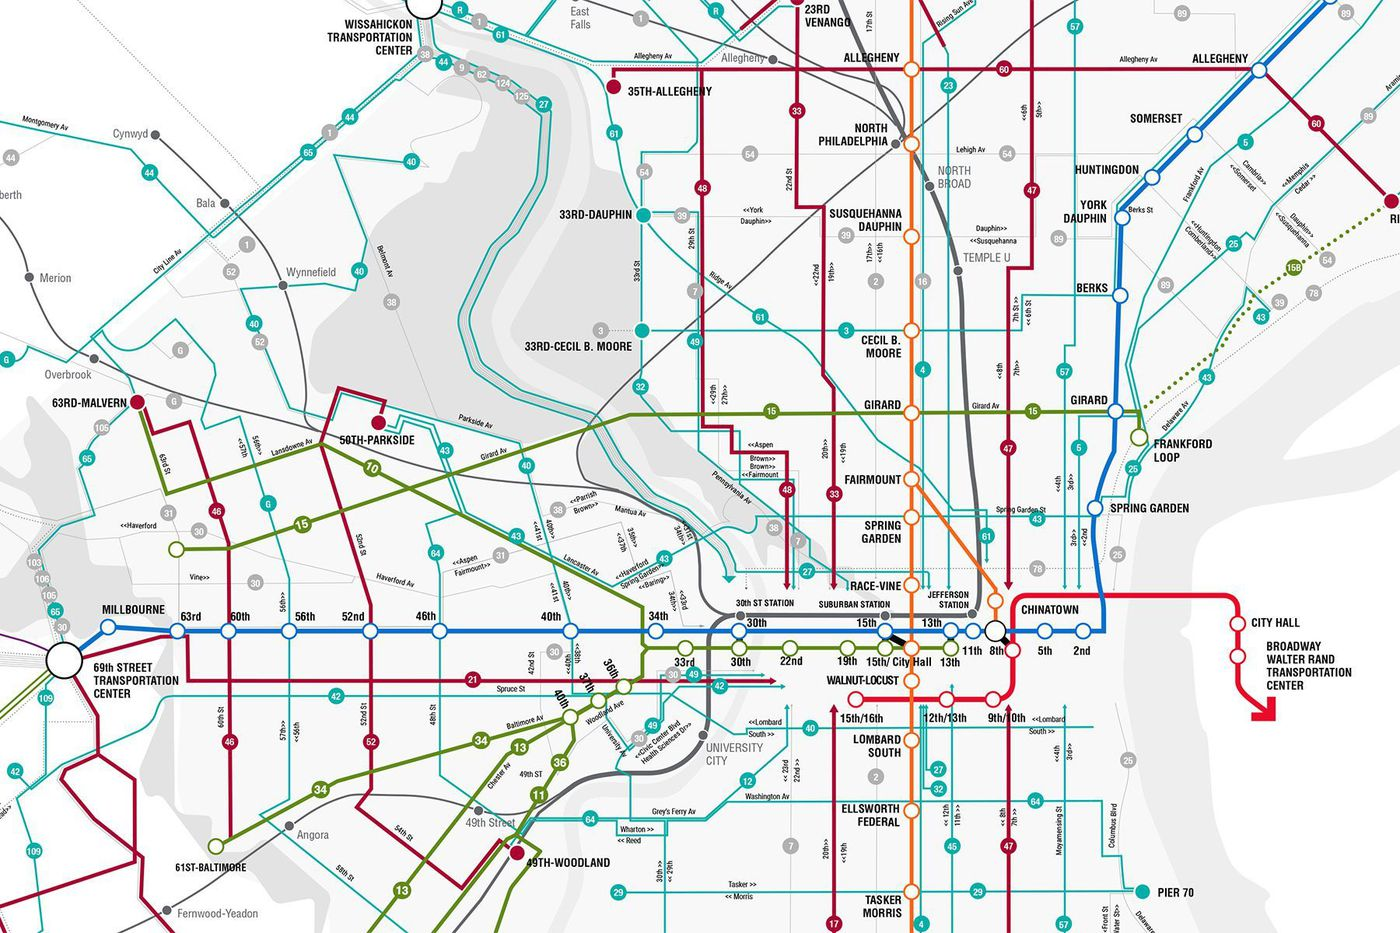 SEPTA gives its bus network map an upgrade